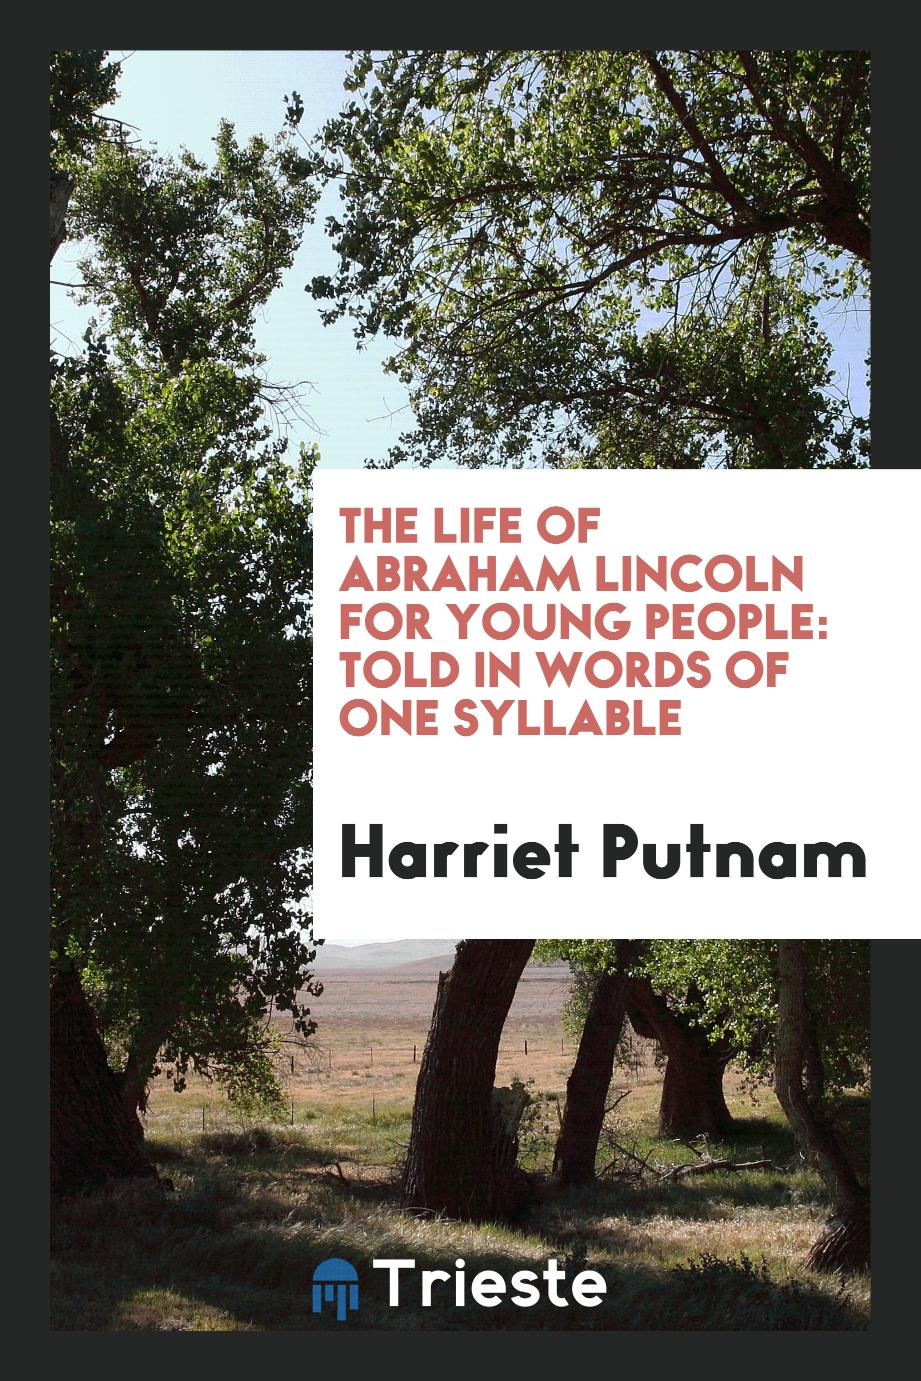 The Life of Abraham Lincoln for Young People: Told in Words of One Syllable